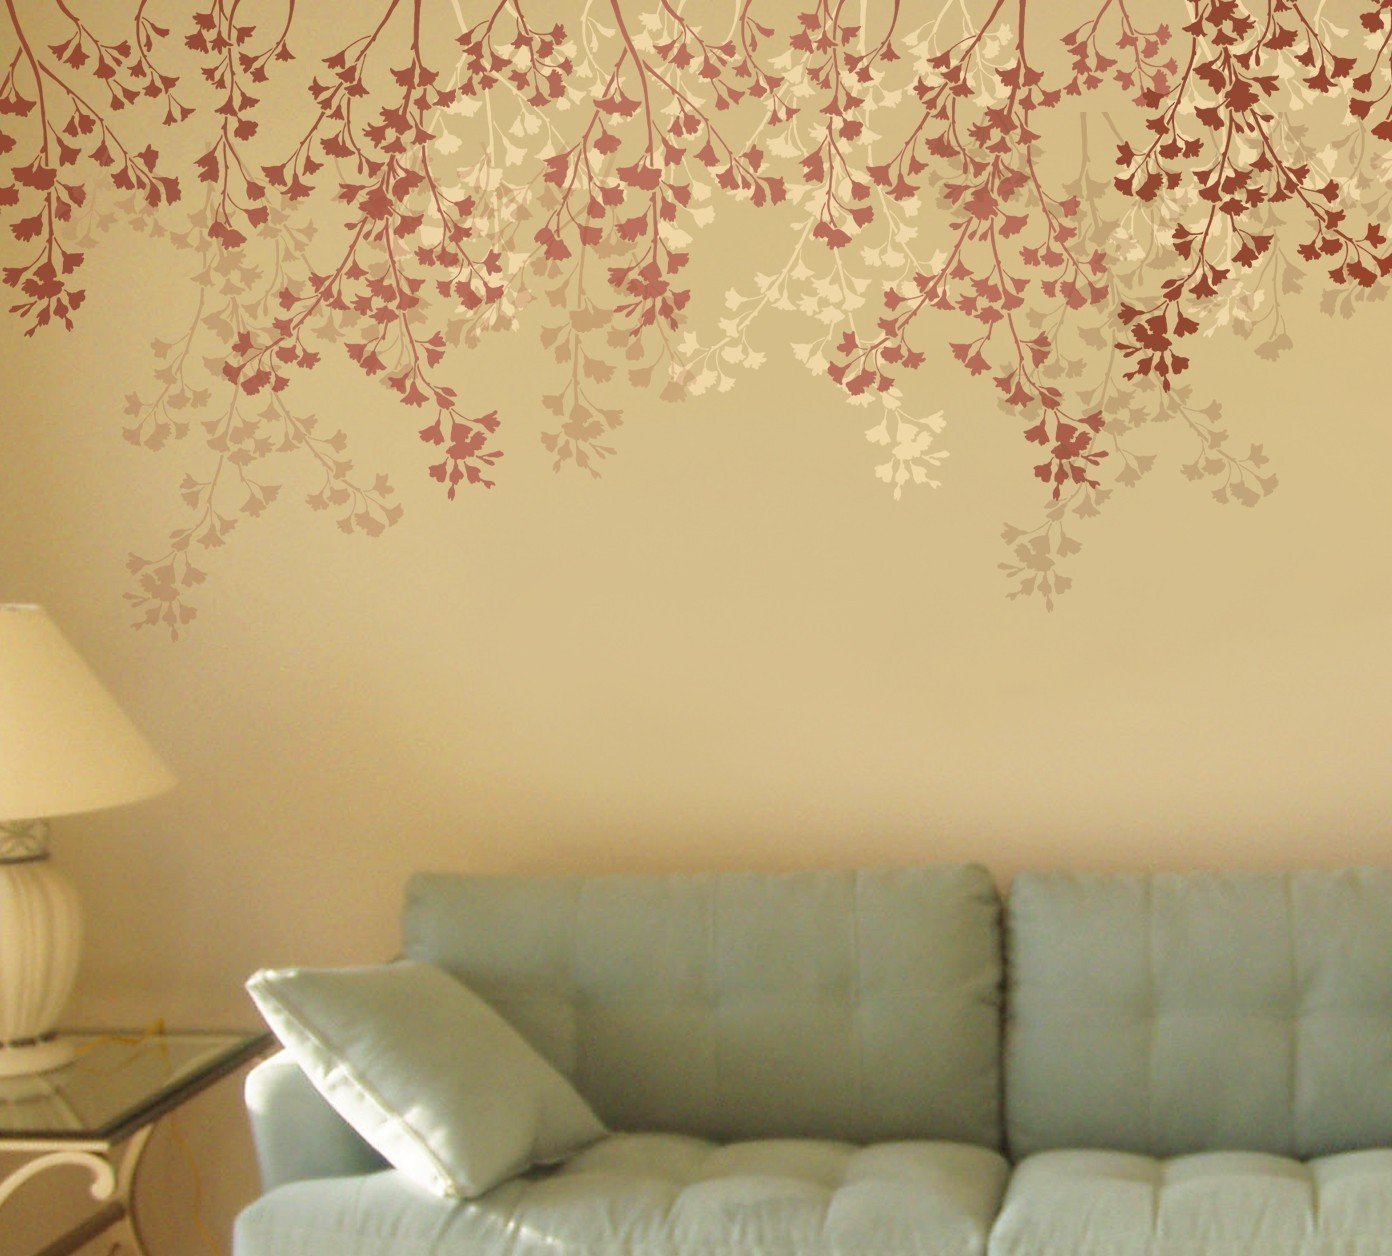 Stencil Time How To Make Your Walls Look Amazing A